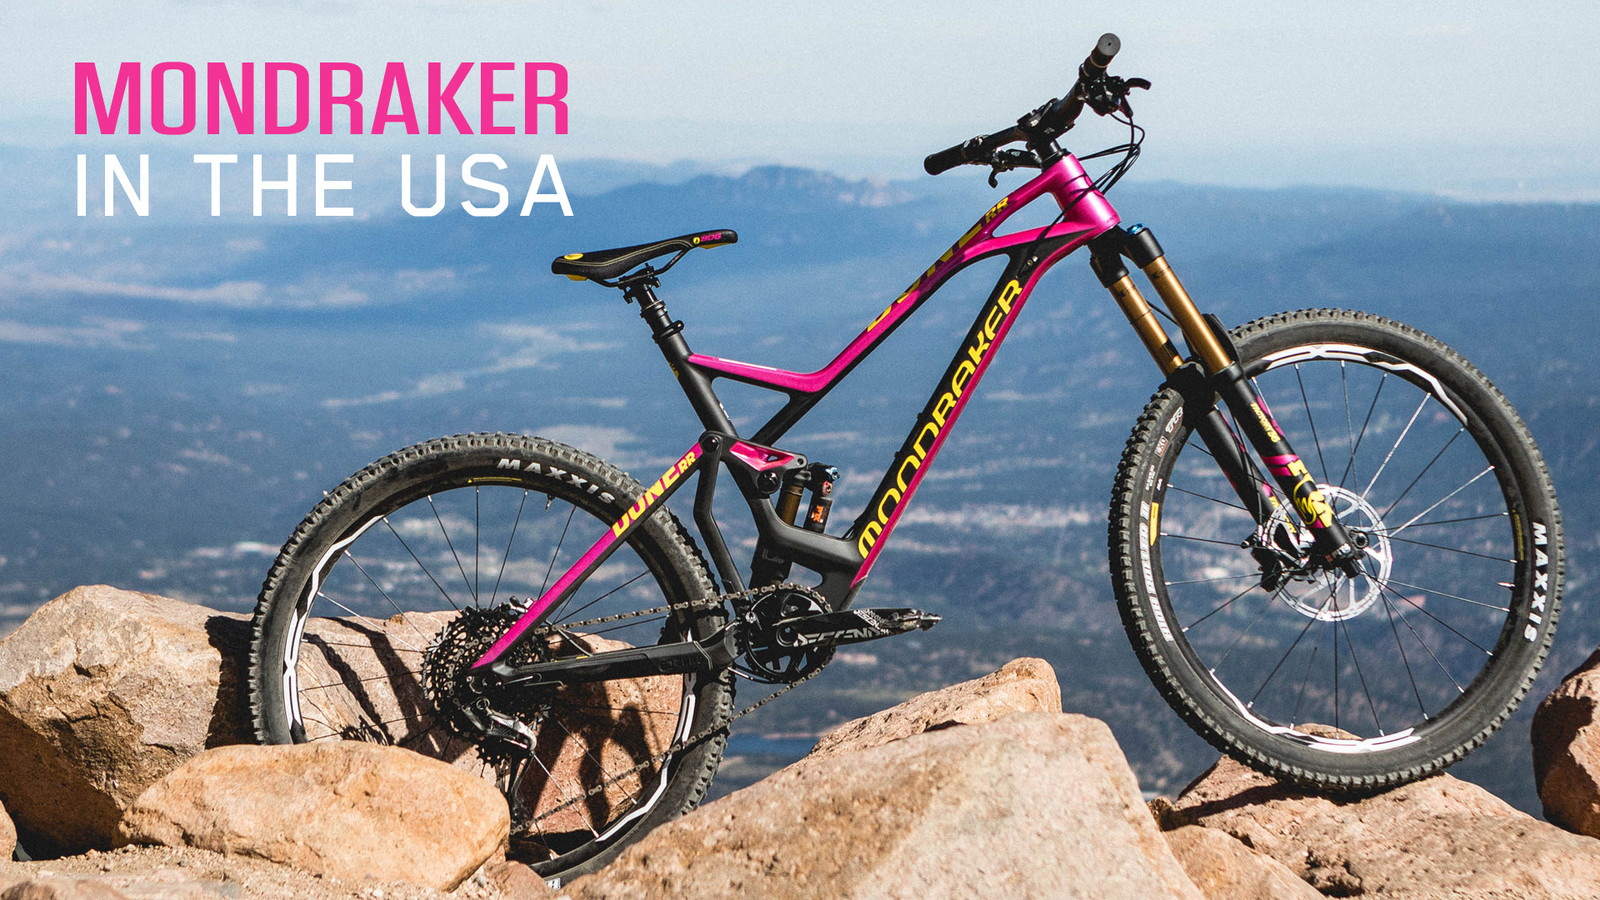 Mondraker Bikes Available Soon in the USA